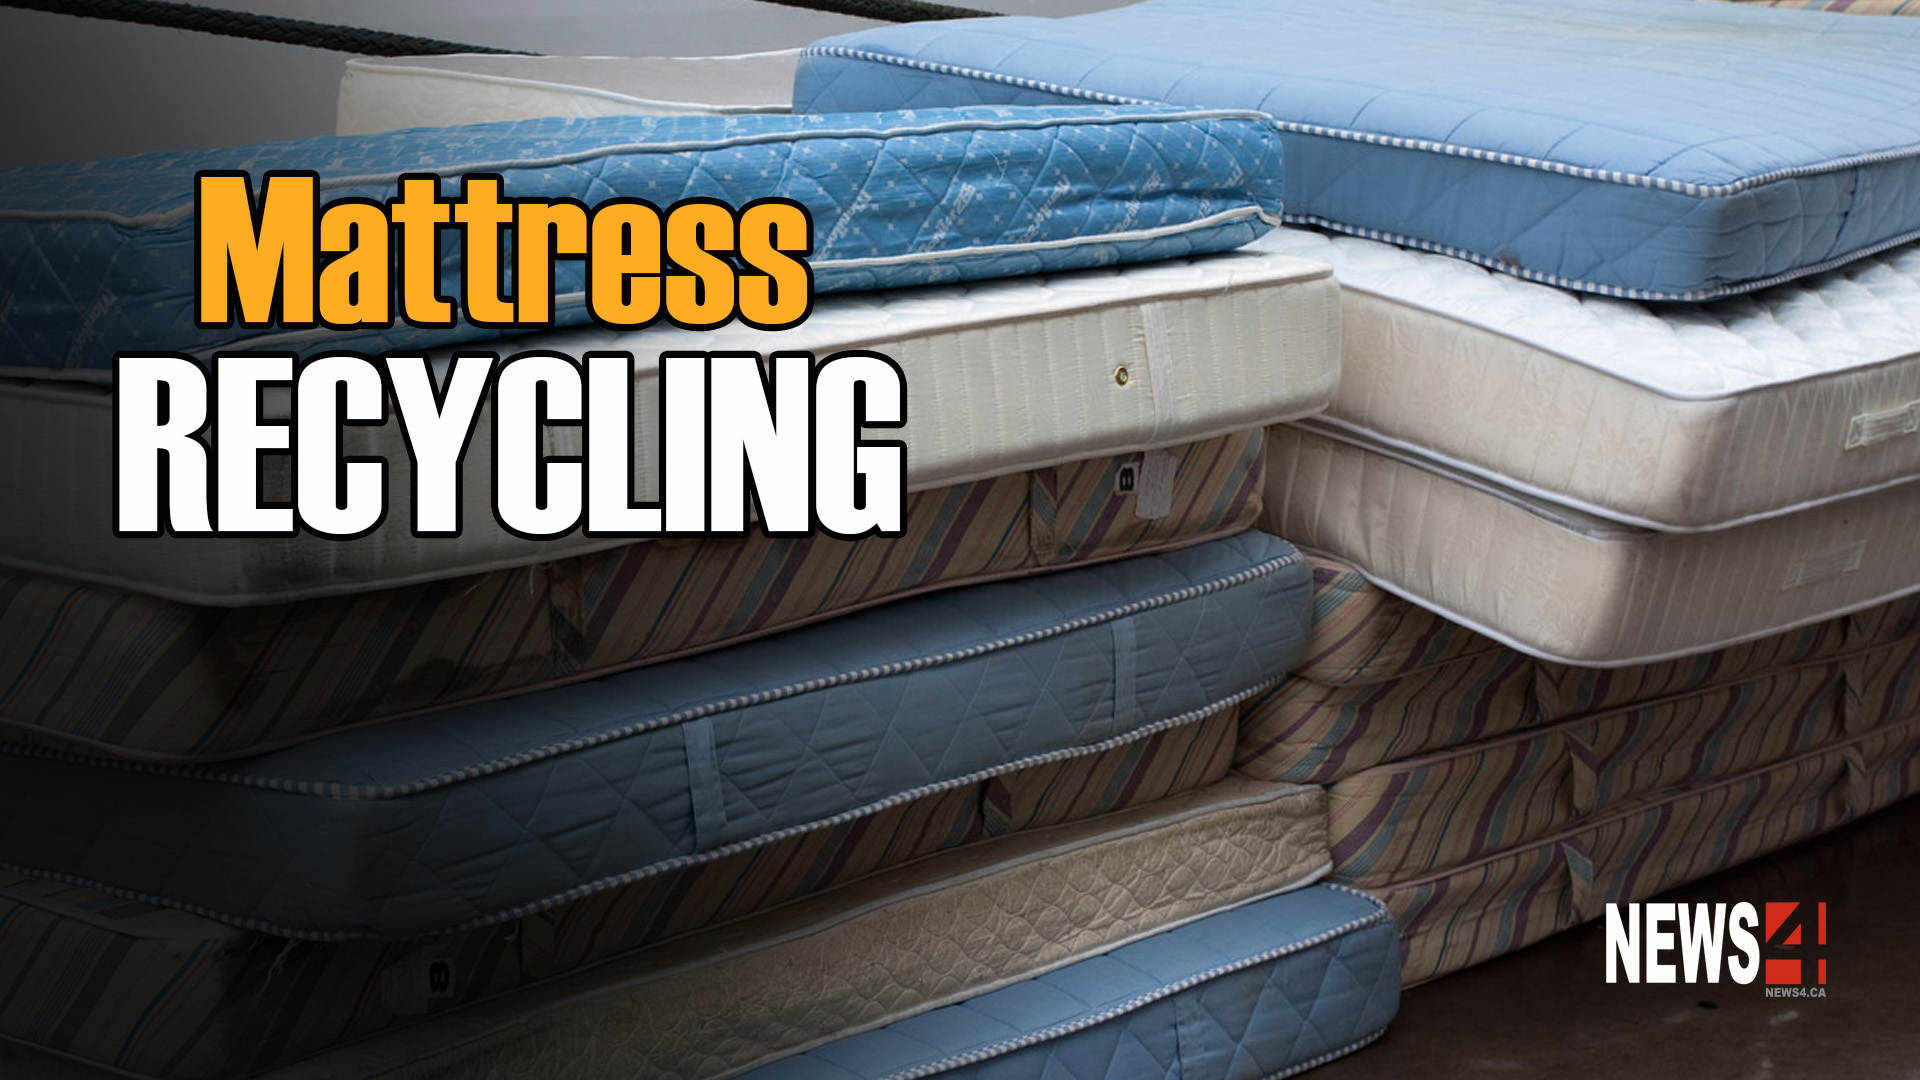 Mattresses Recycling Program Launched News 4